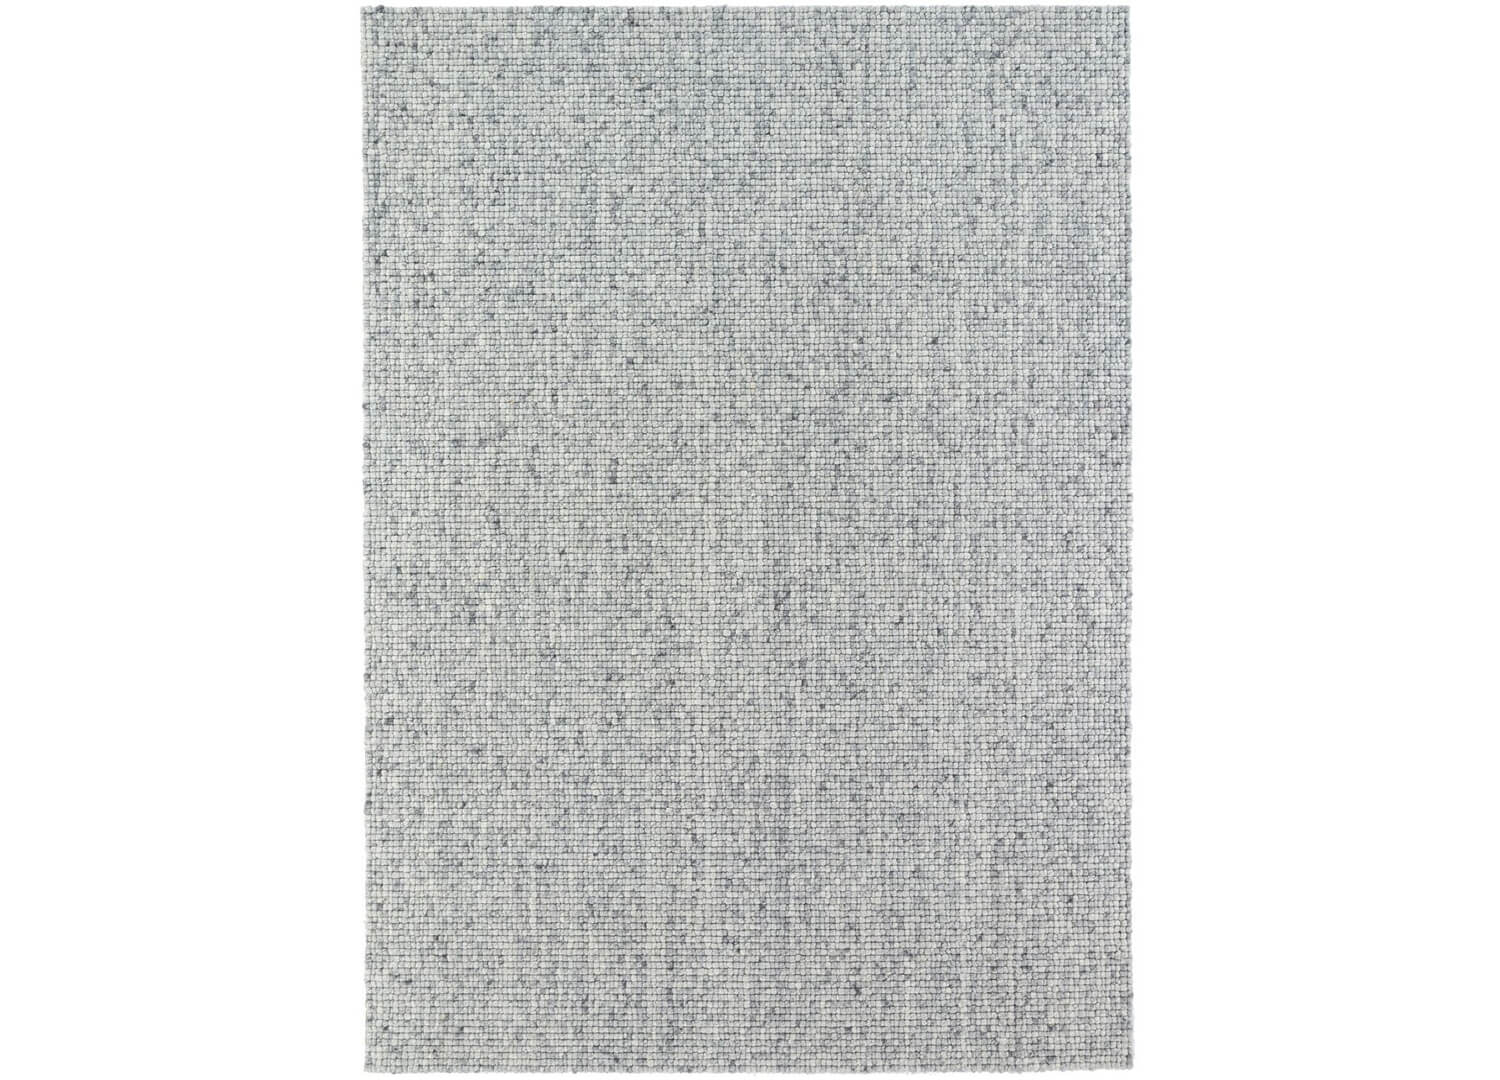 Est Living Design Directory Halcyon Lake Beach Life Silver Rug 1